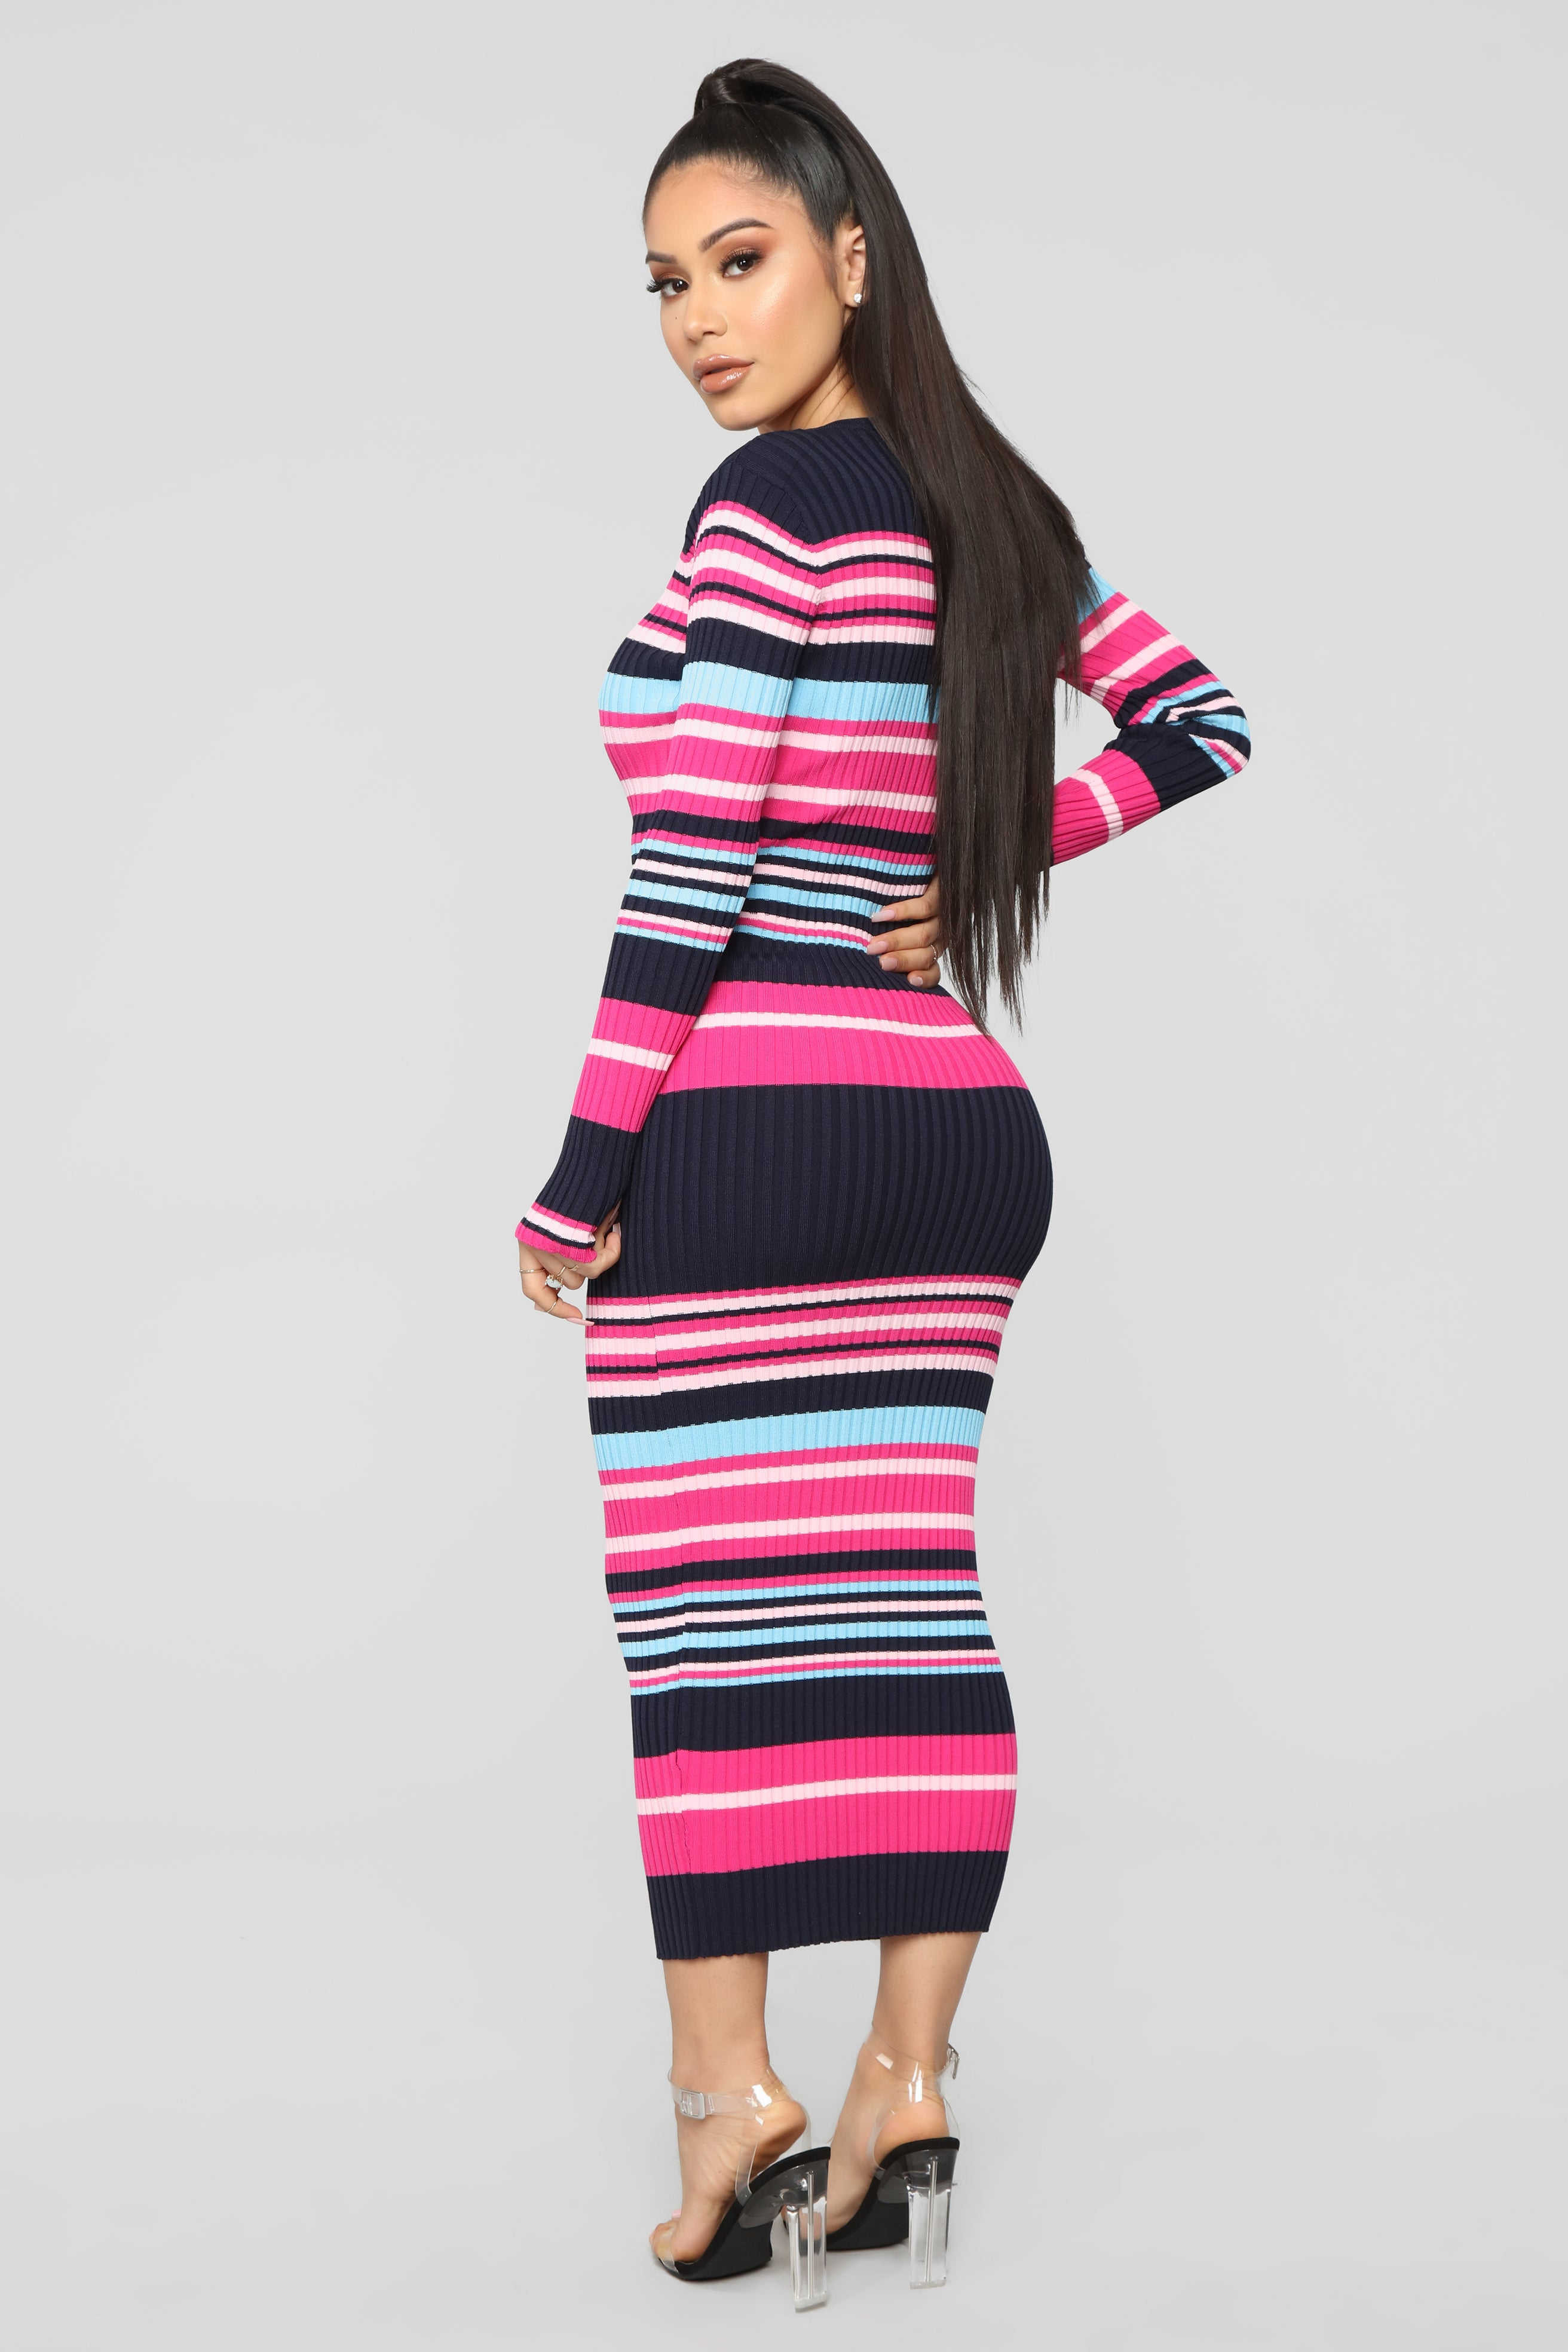 6c581b387b390 Straight To It Striped Sweater Dress - Navy/Pink